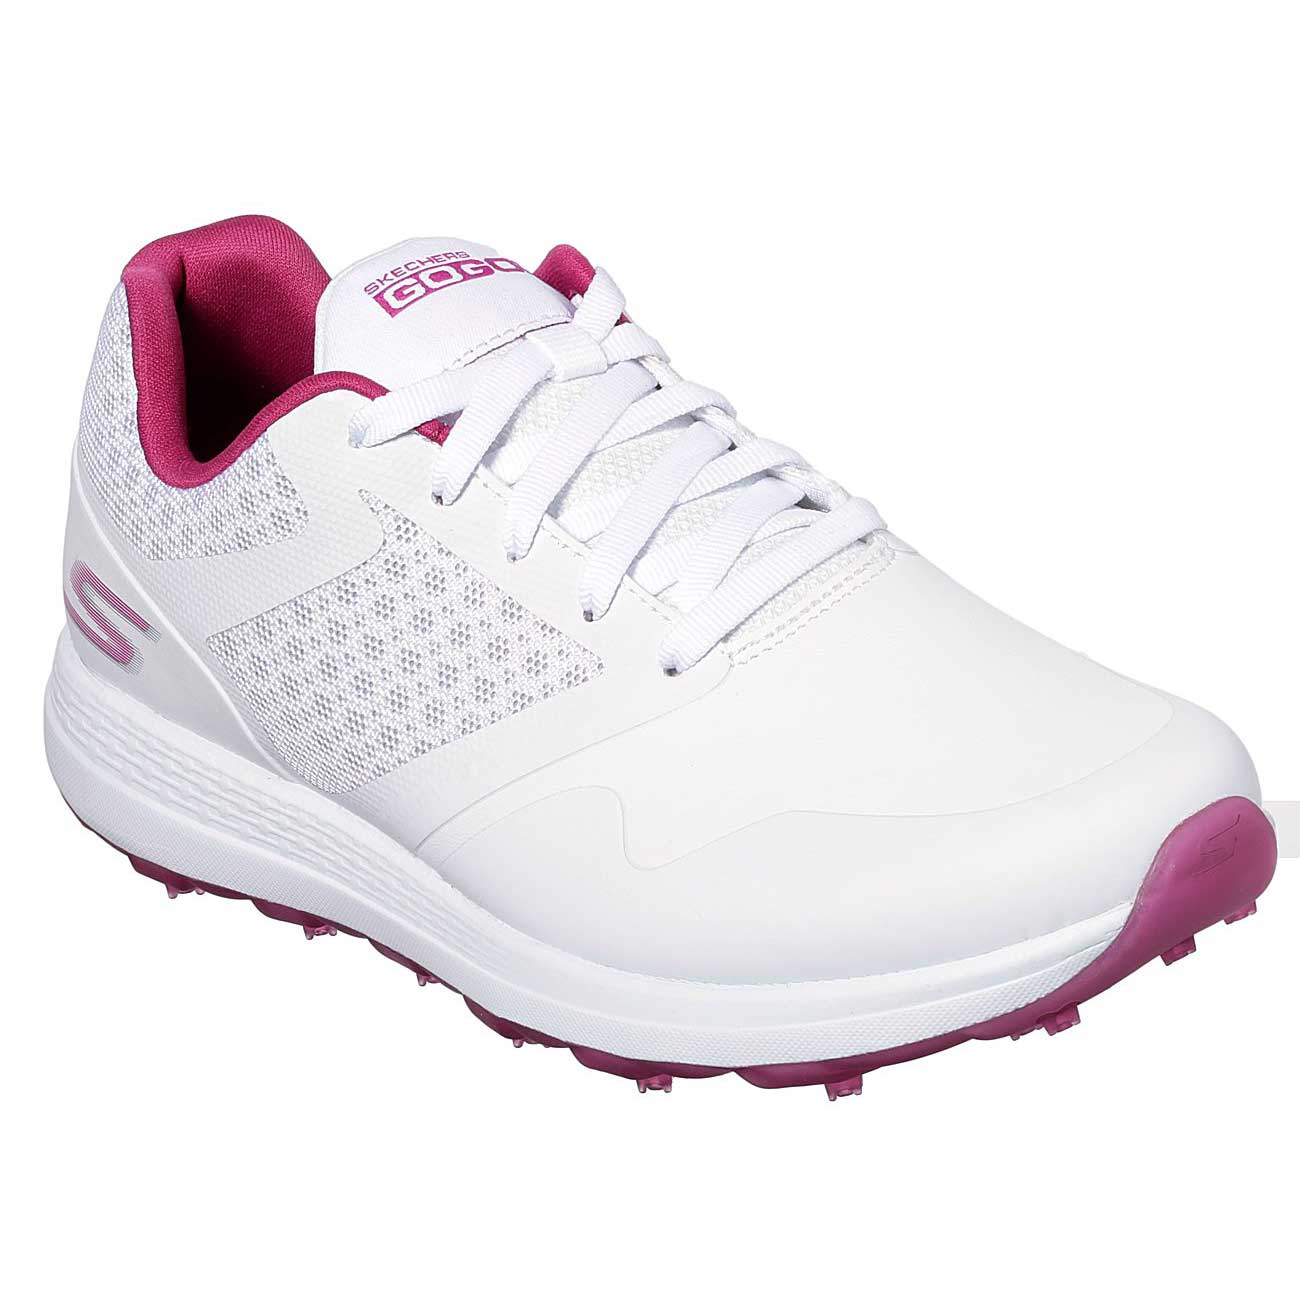 Skechers Women's Go Golf Max White/Pink Golf Shoe